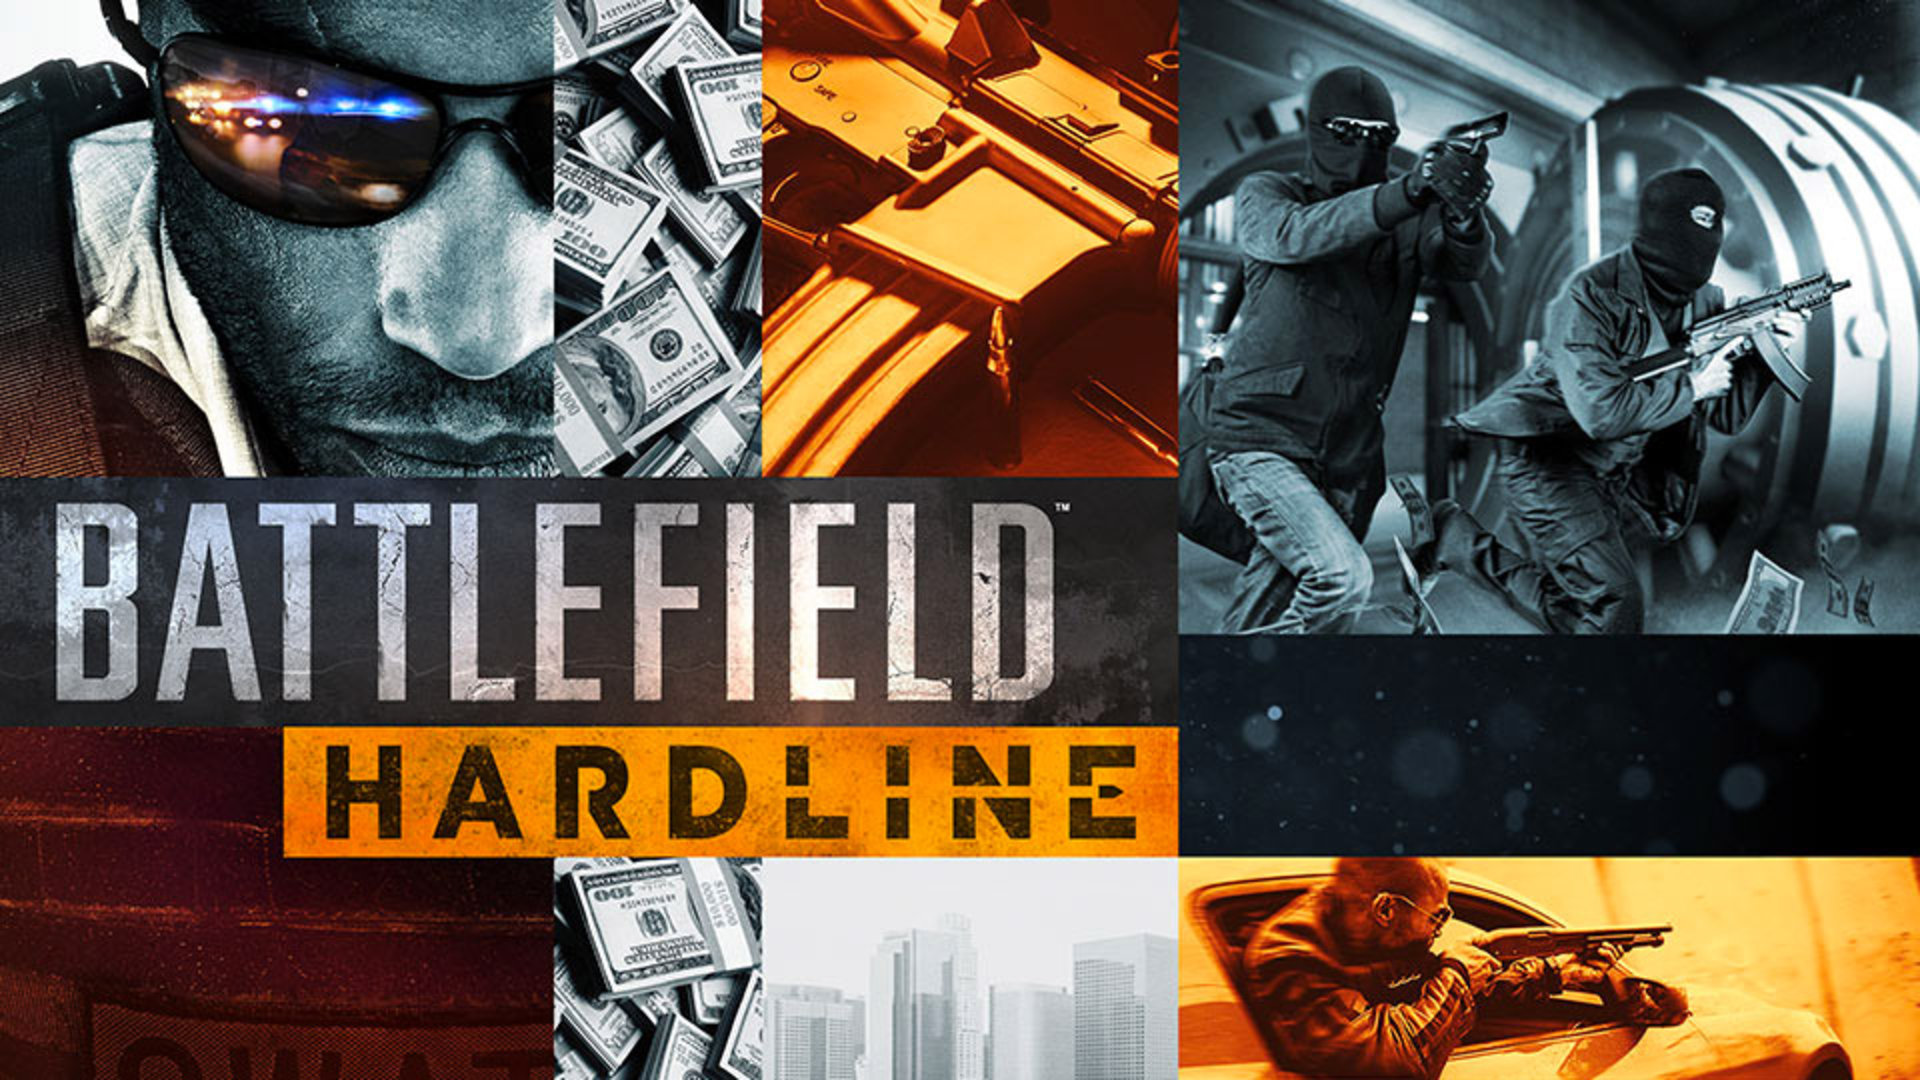 https://whatsyourtagblog.files.wordpress.com/2014/05/battlefield_hardline-0_cinema_1920-0.jpg